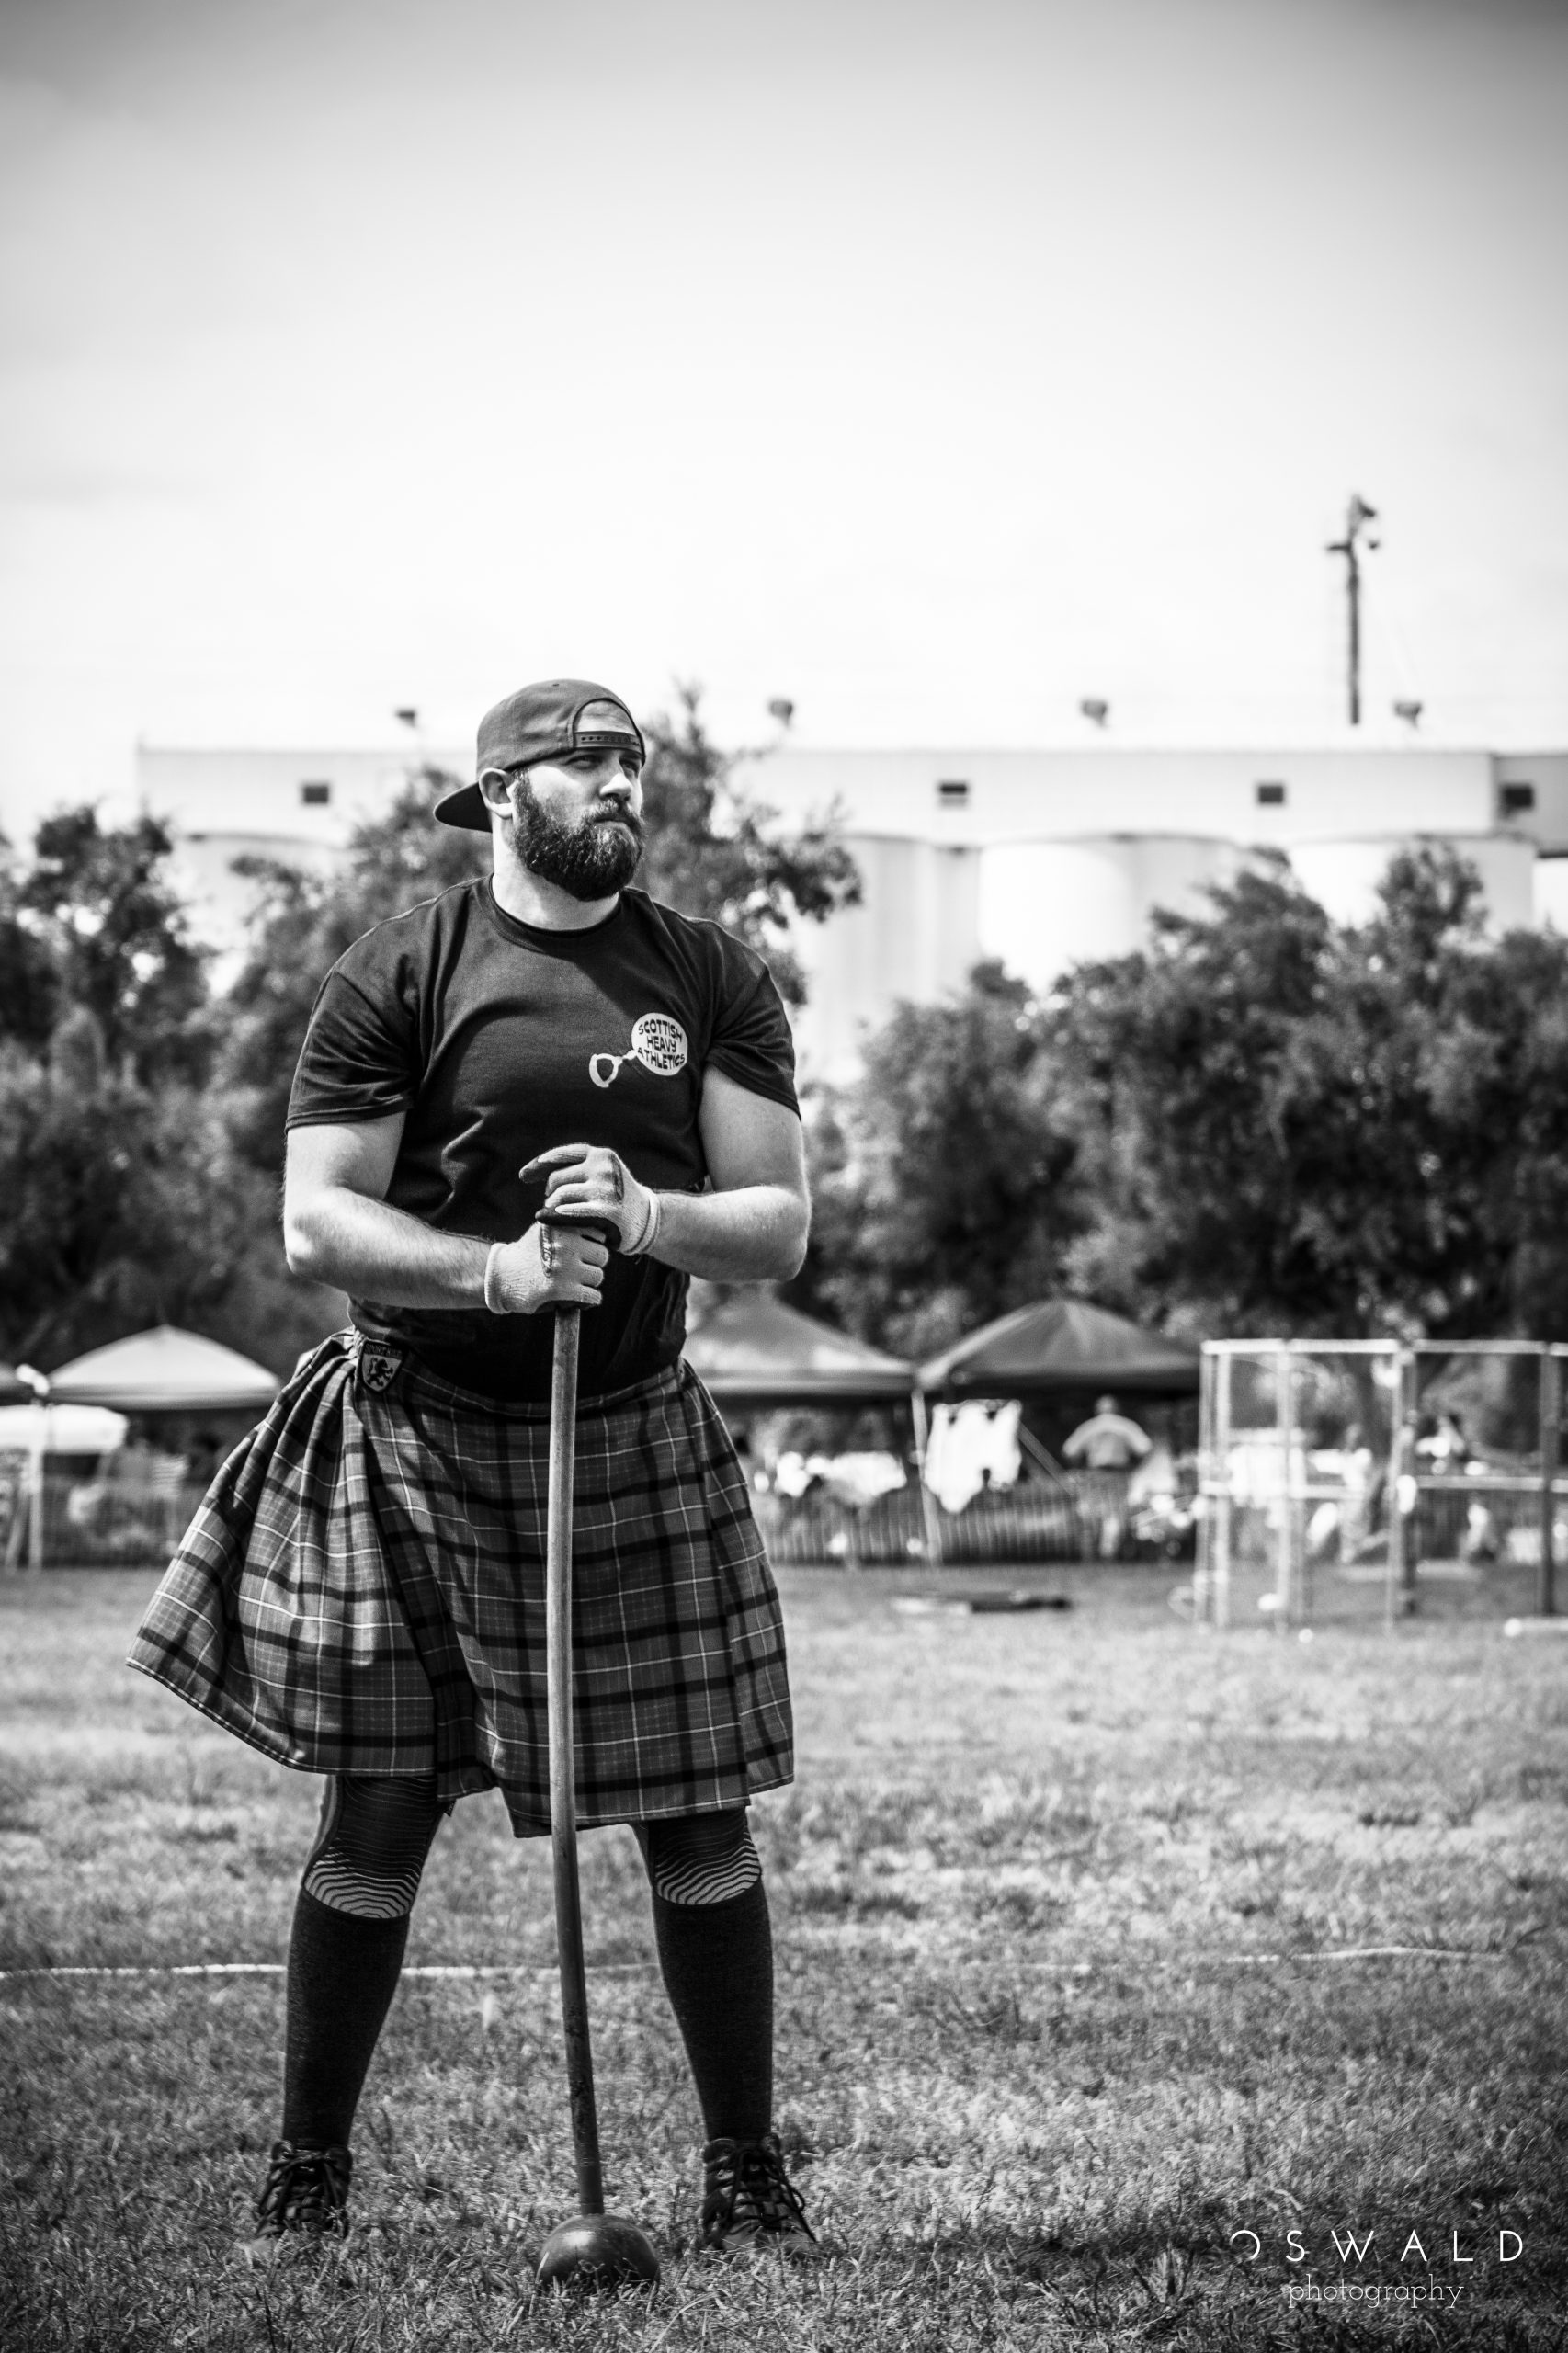 A strong and muscular young man stands at ease prior to his competition in the Scottish Hammer Toss.